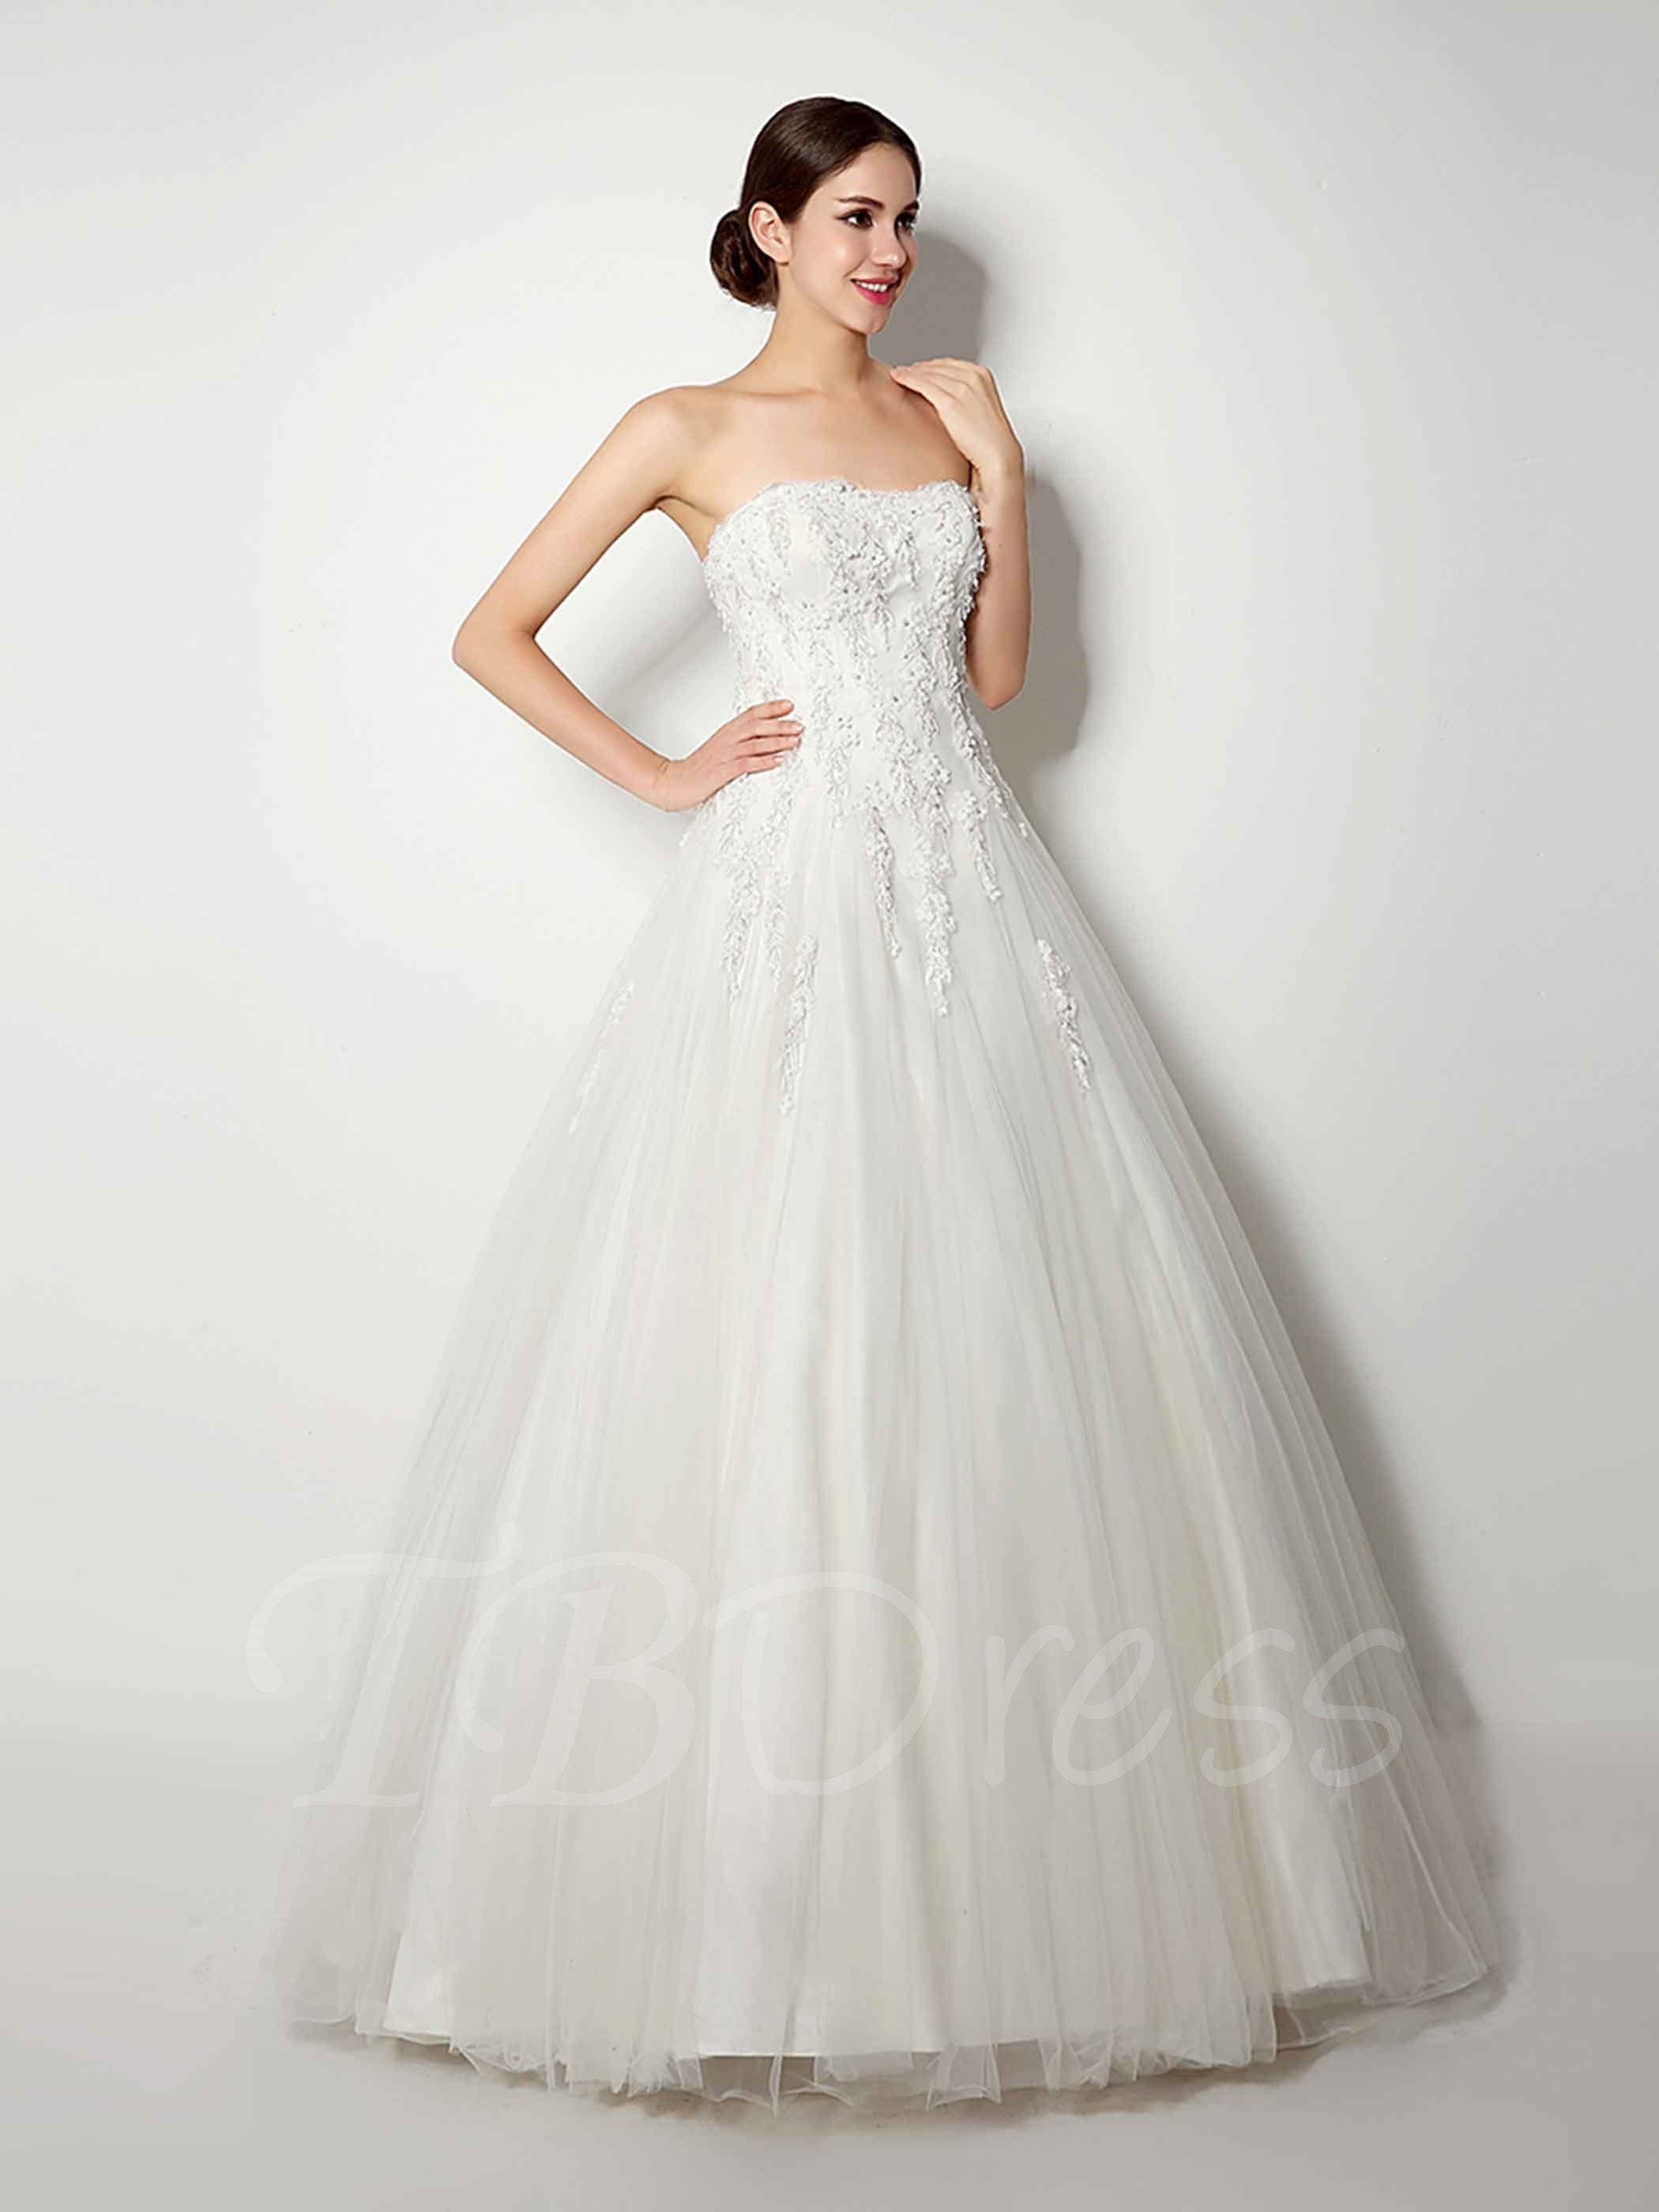 2a50764ffeb7 Little Flowers Beaded Strapless Ball Gown Wedding Dress Simple Lace Wedding  Dress, Princess Style Wedding